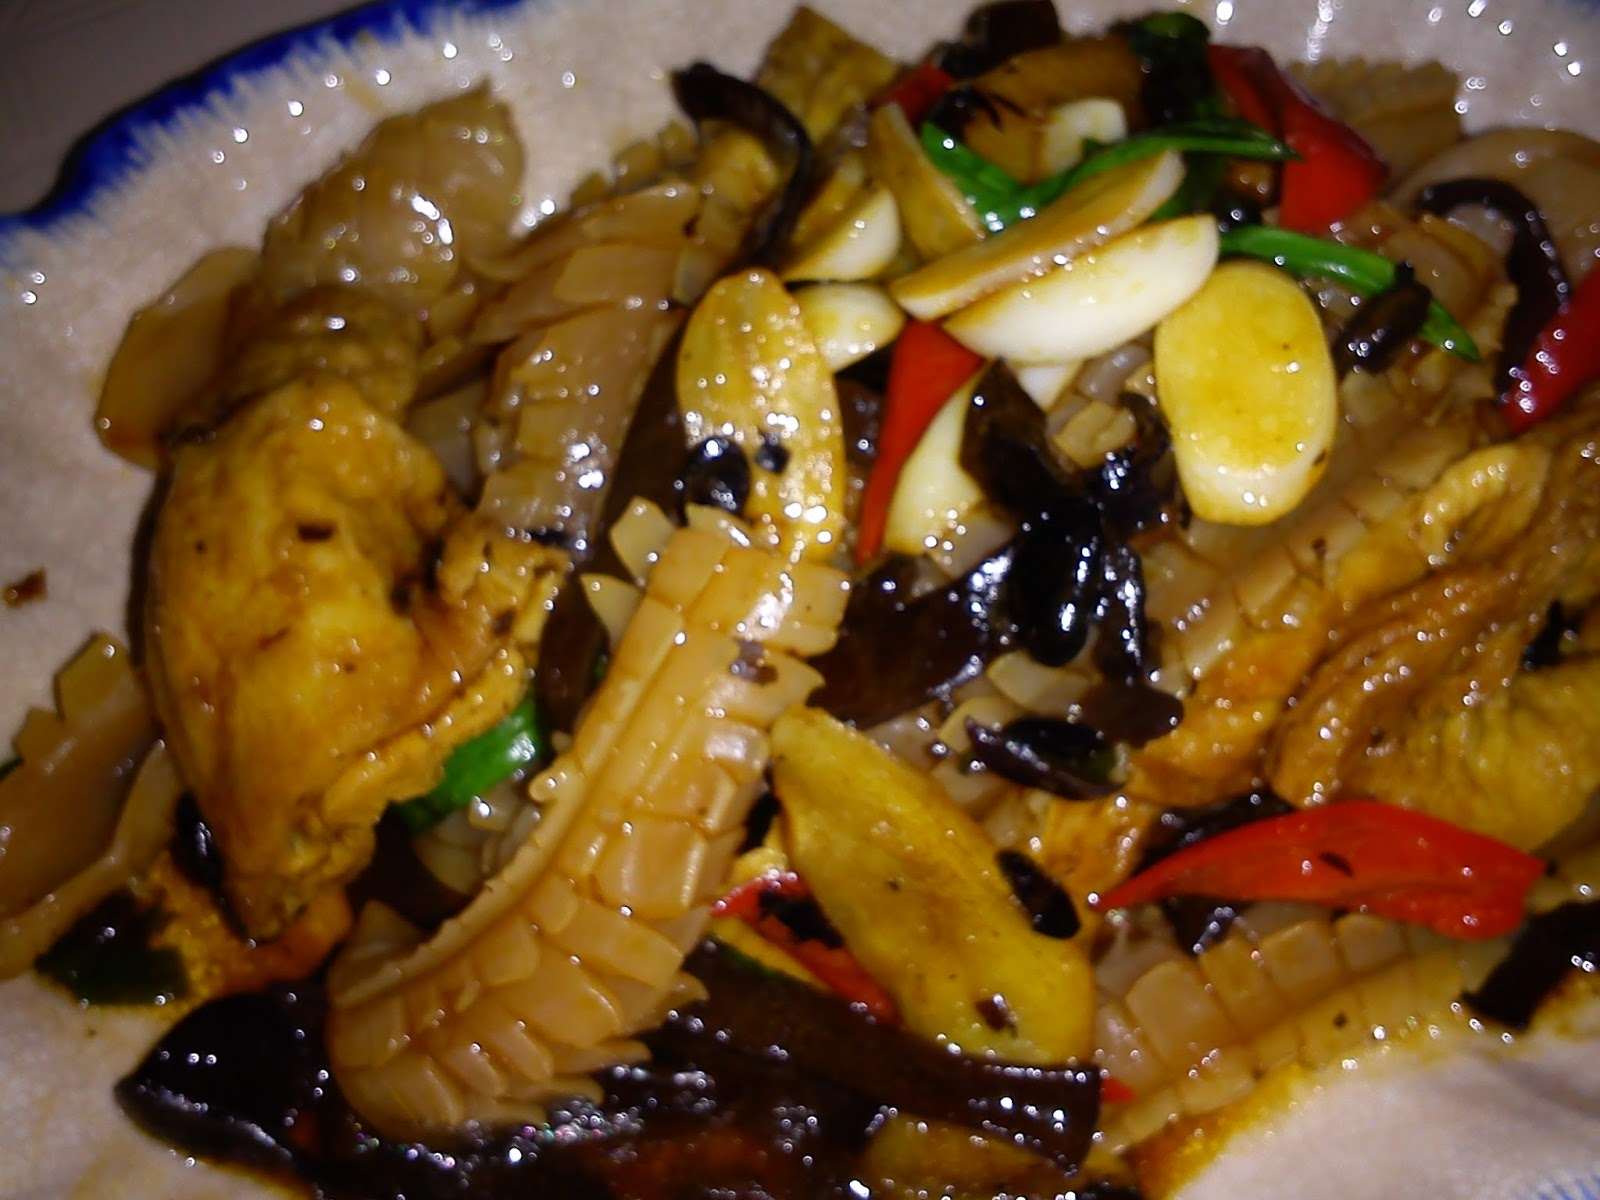 how to prepare black fungus for cooking